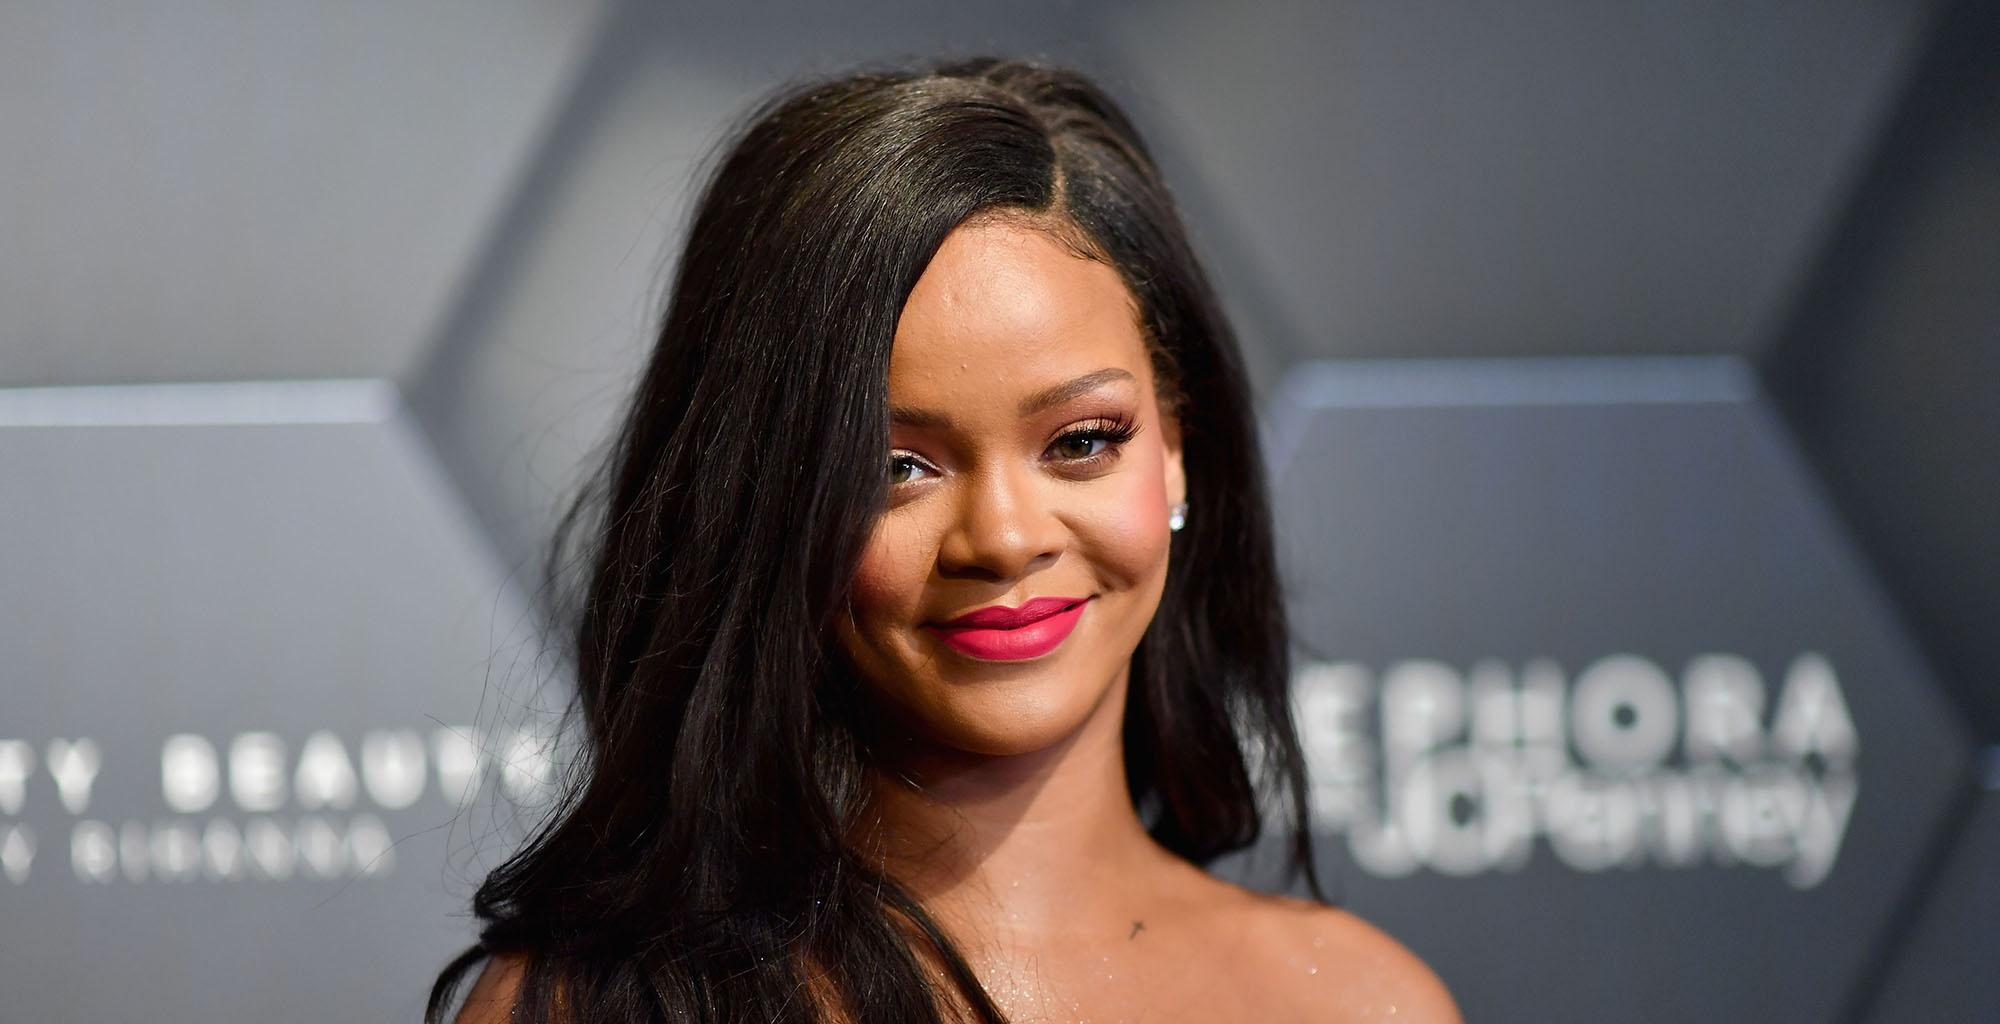 Rihanna Is Reportedly Renting Her Beverly Hills Mansion - Find Out For How Much